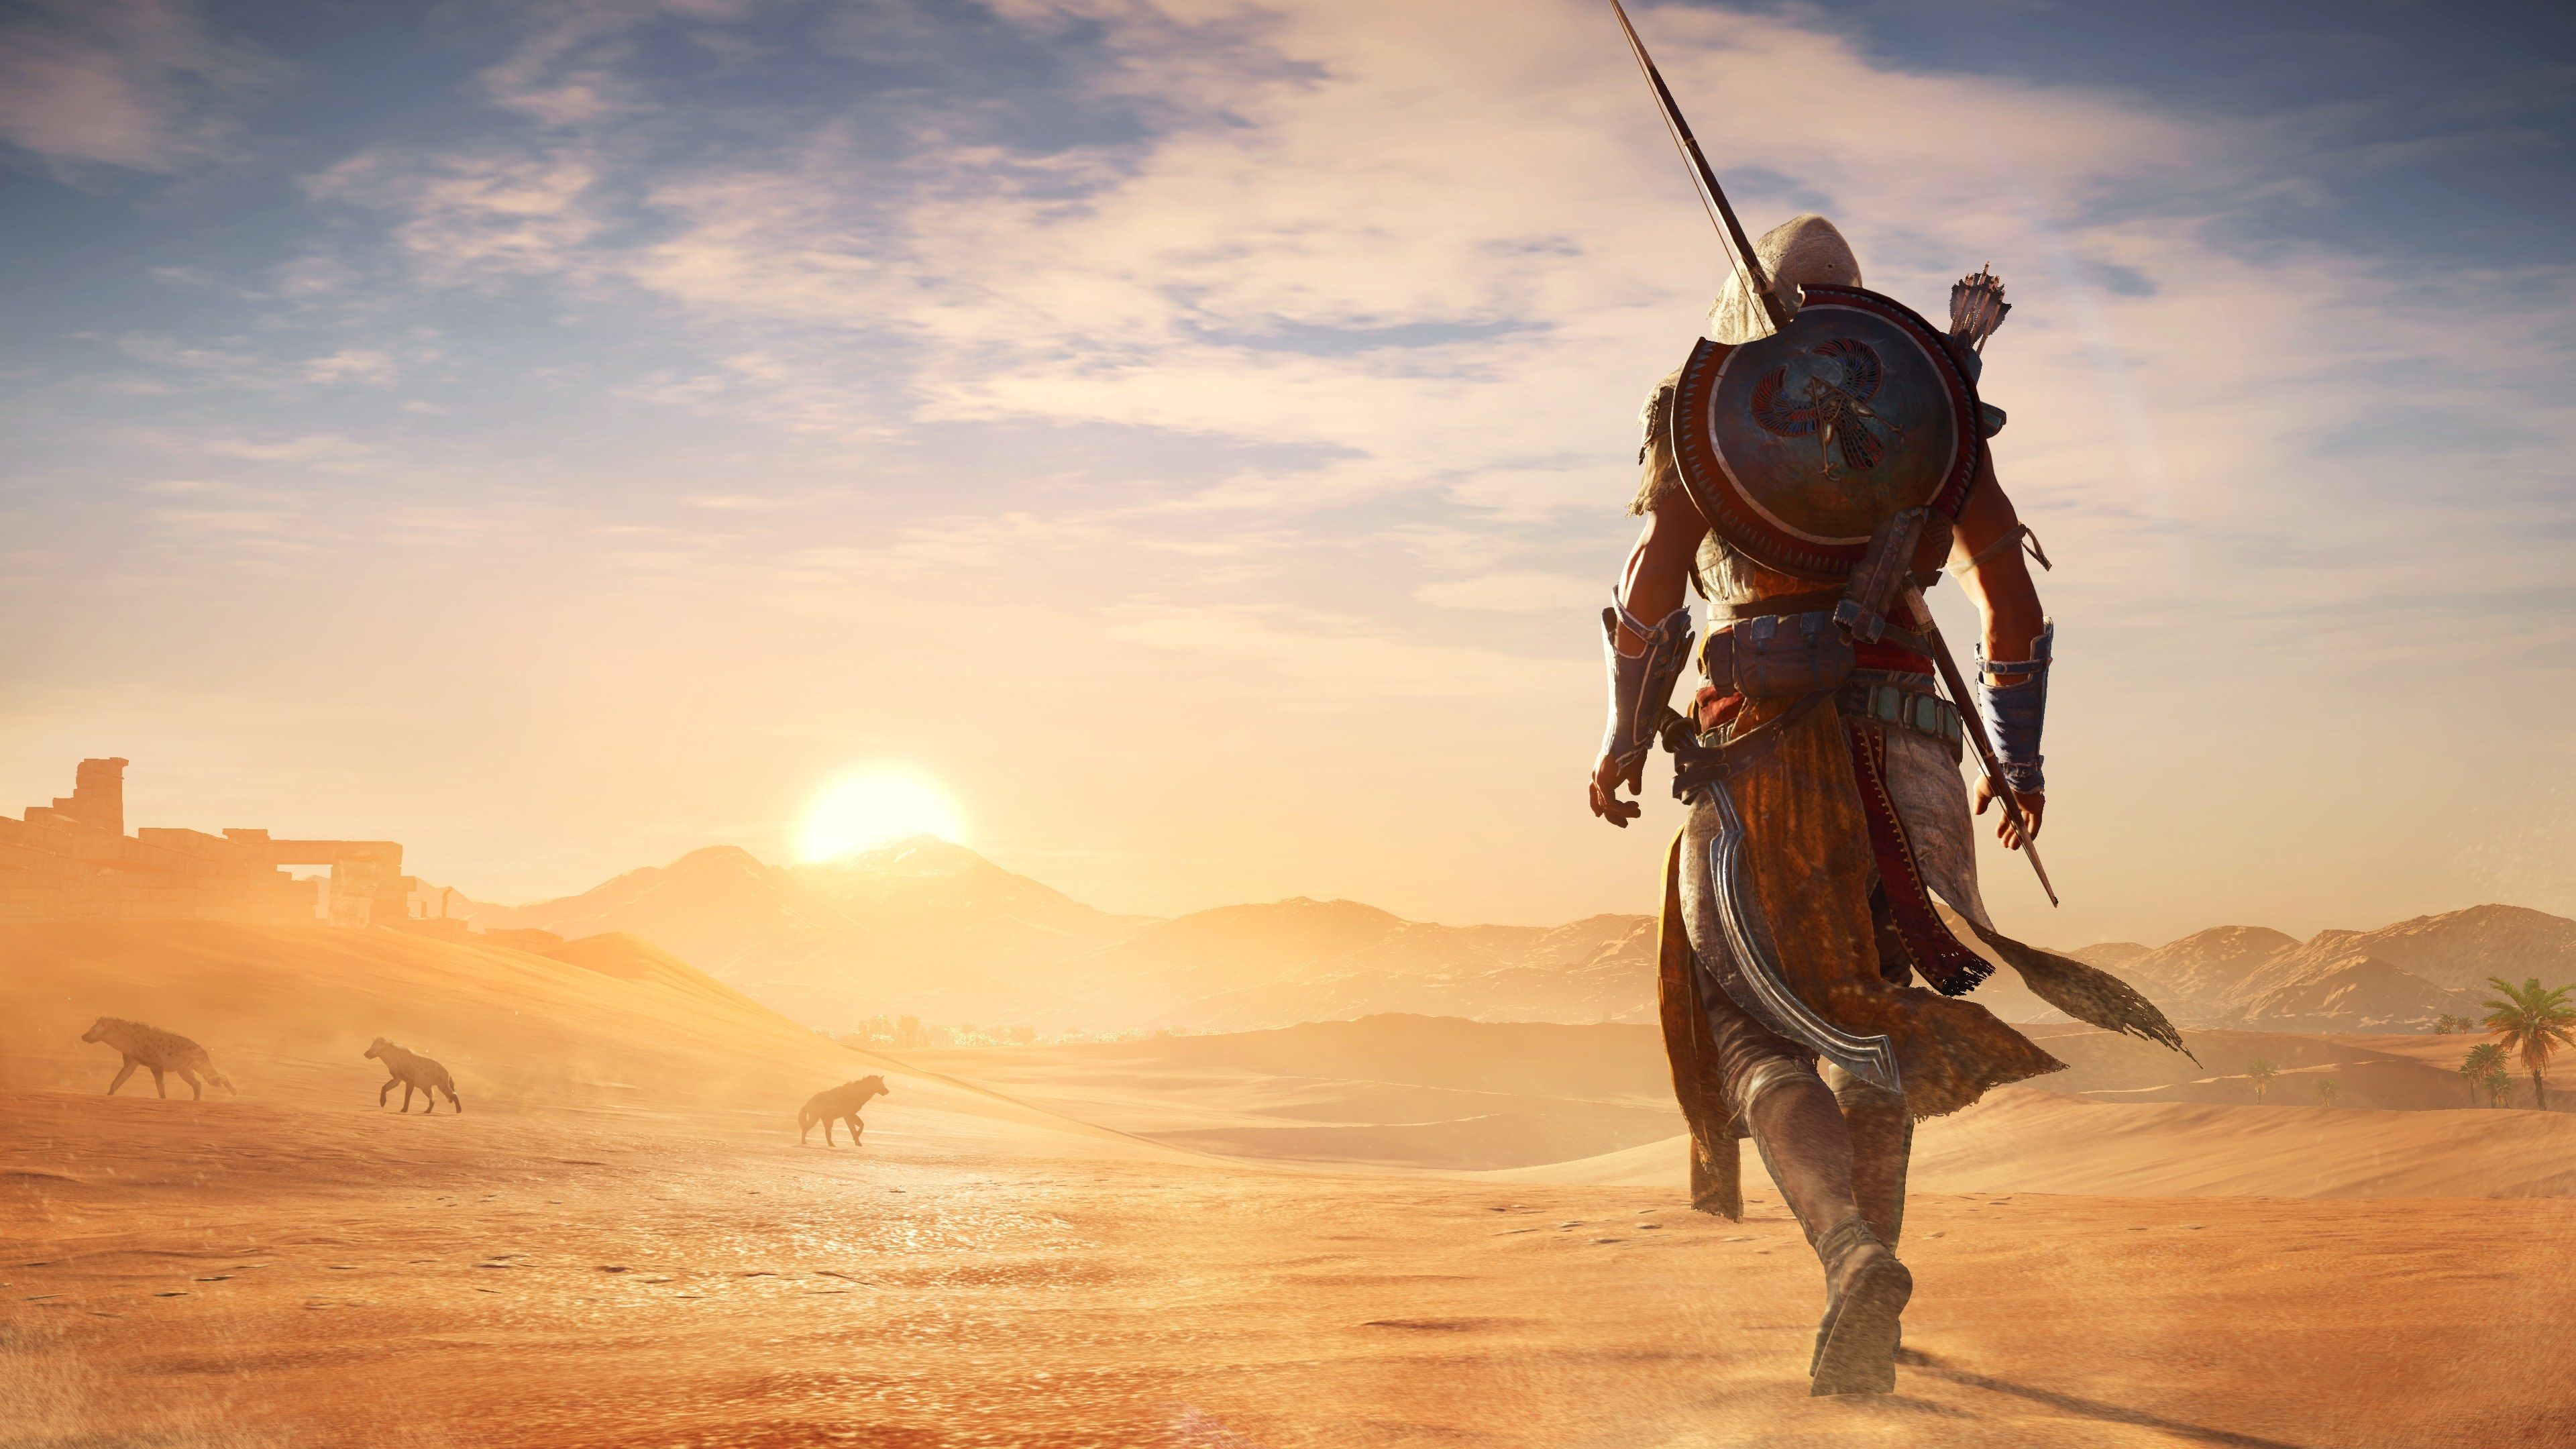 3840x2160 Assassins Creed Origins 4k Wallpapers For Computer In 2020 Assassin S Creed Wallpaper Assassins Creed Origins Assassins Creed Odyssey